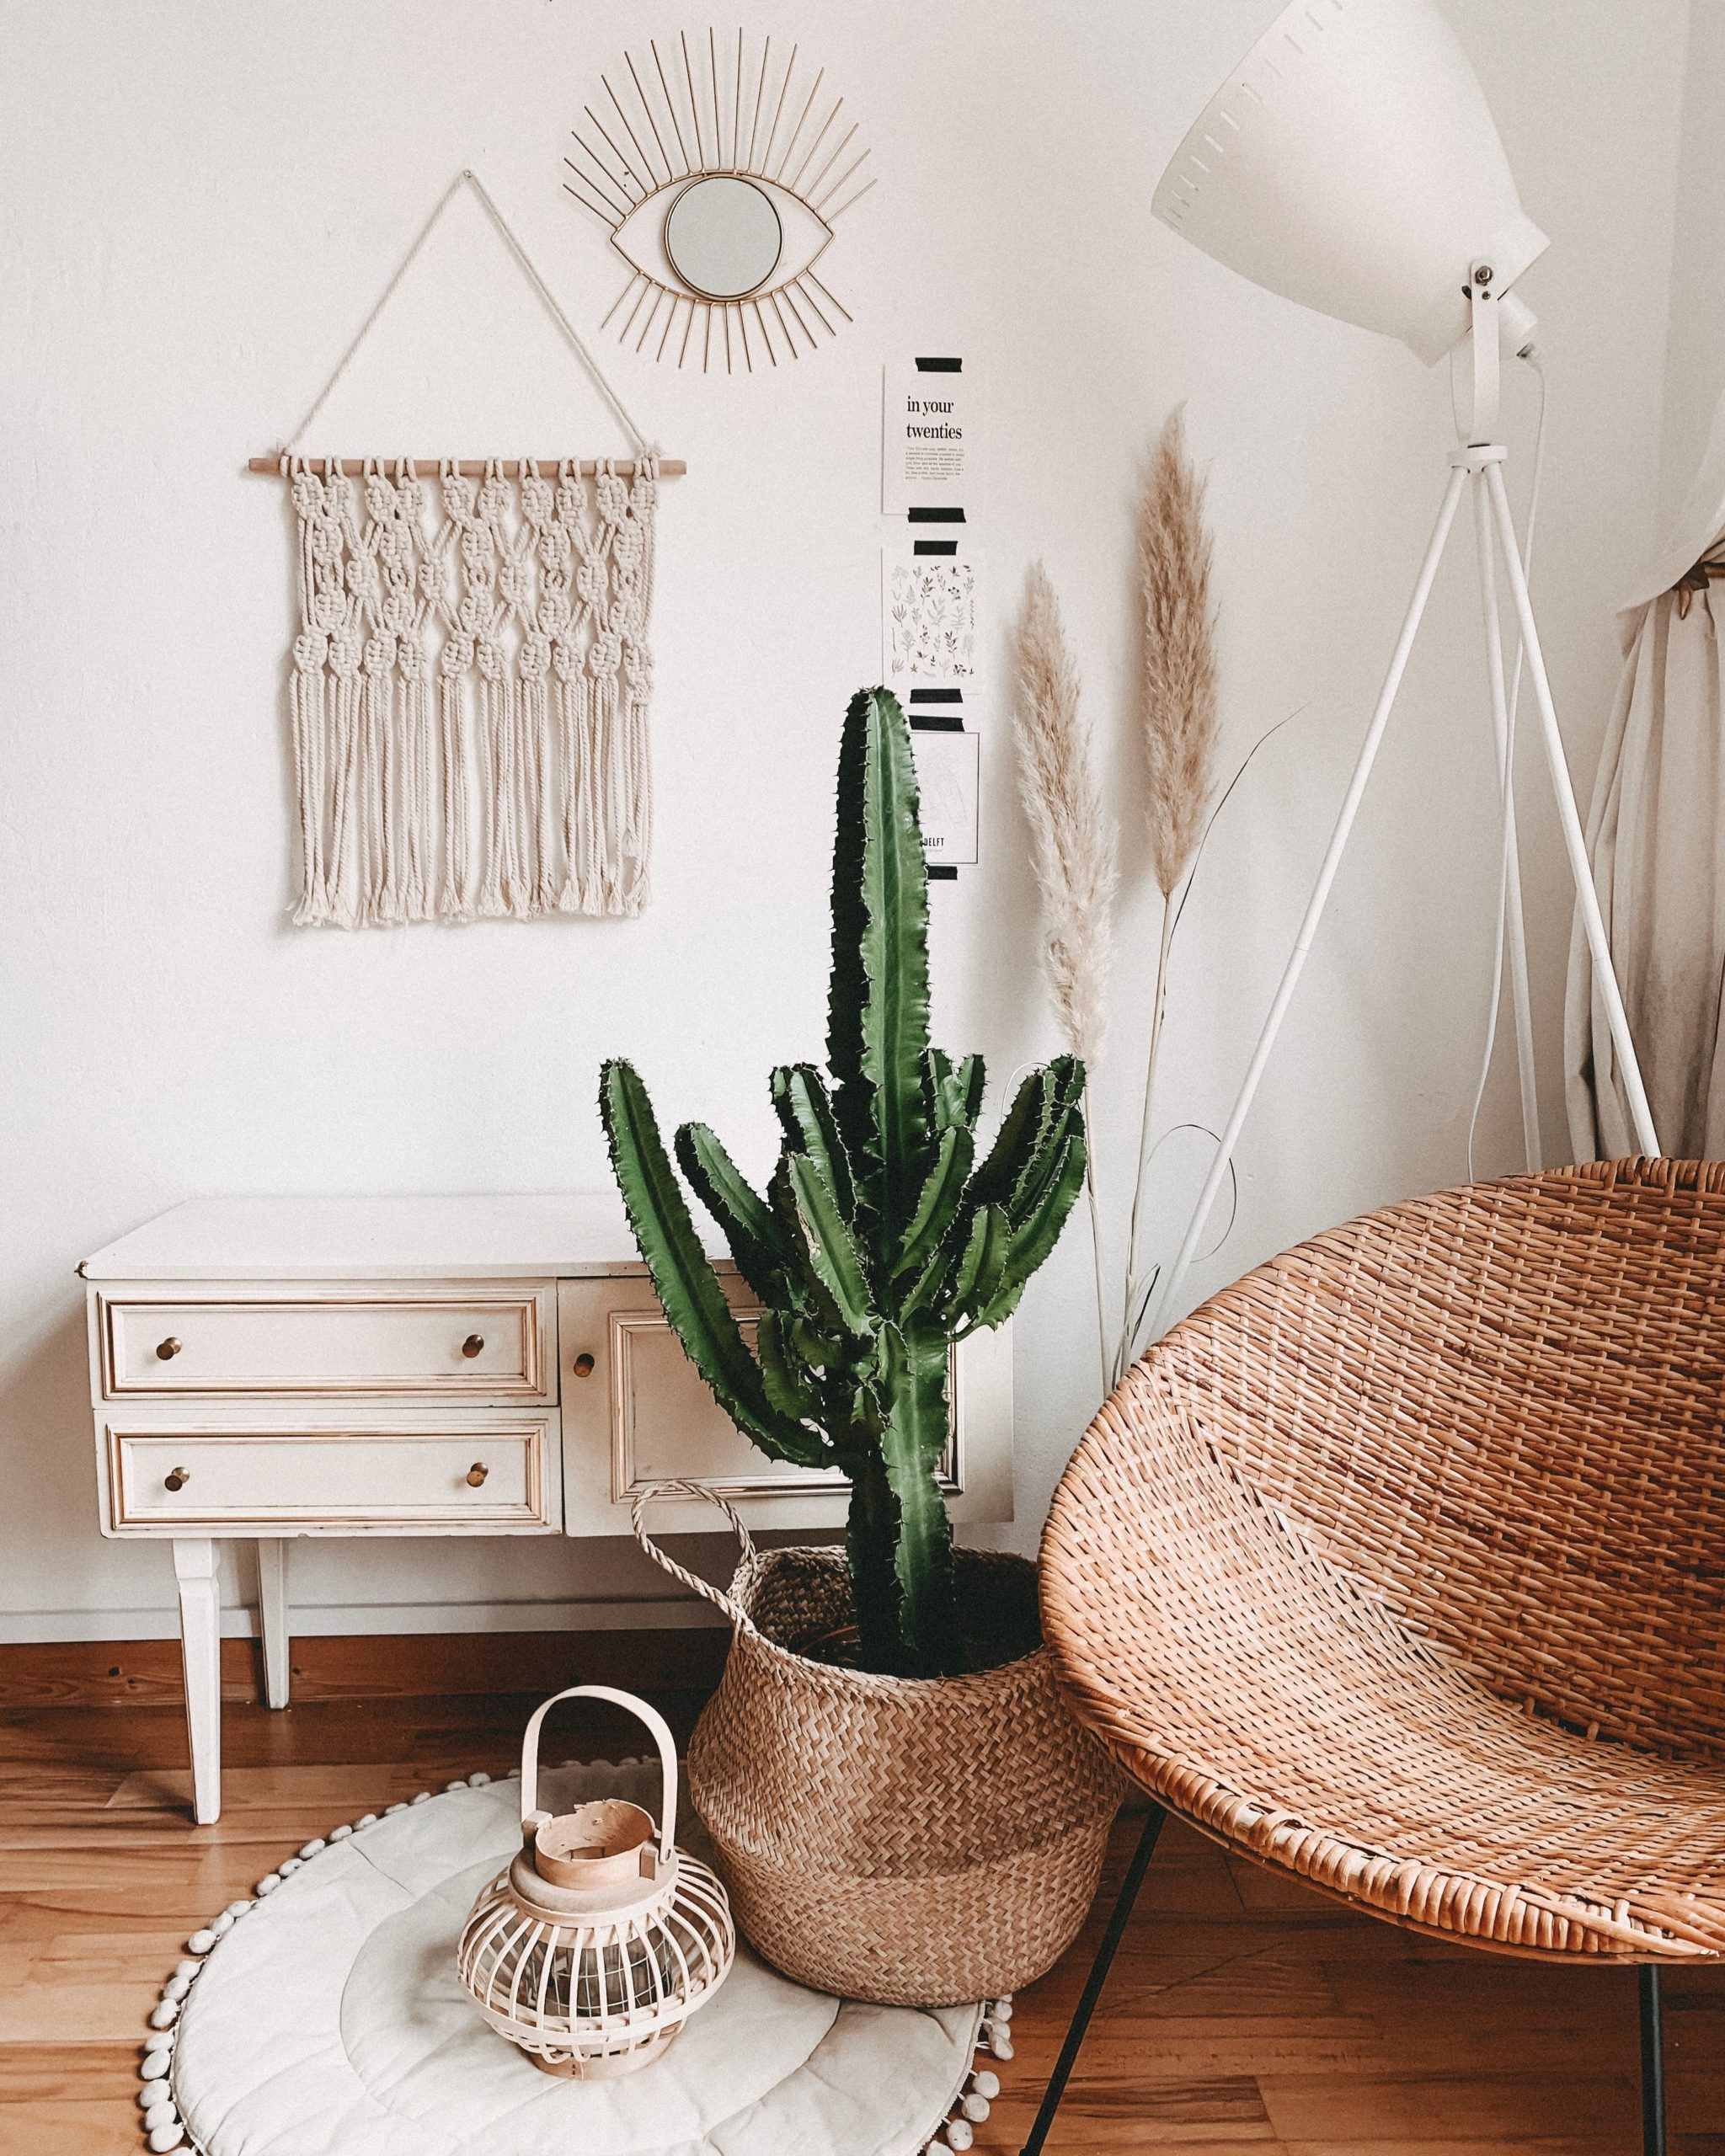 Boho Chic for earth babes